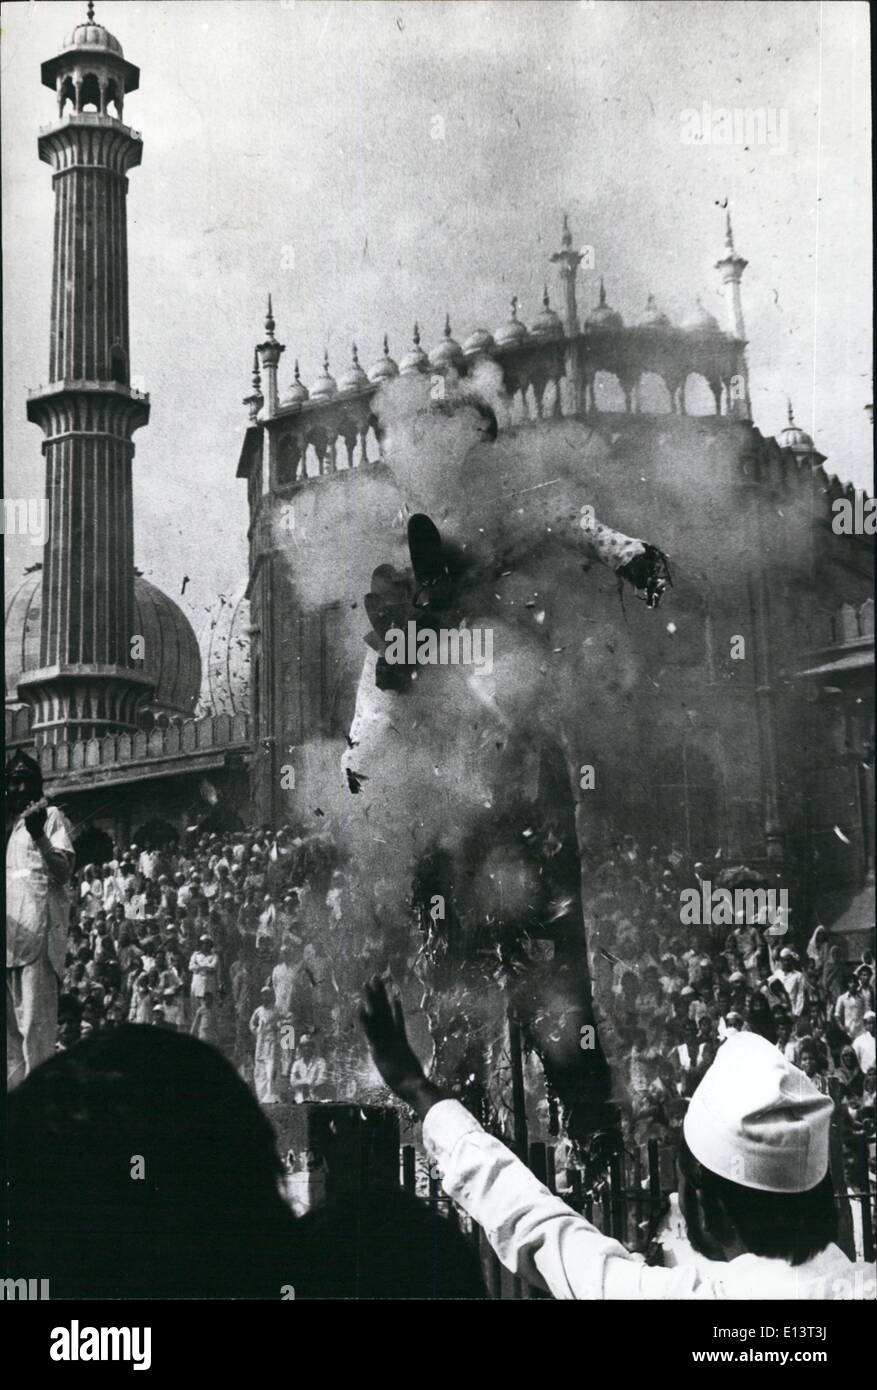 Mar. 27, 2012 - Members of various Muslim organisations burning an effigy of ''anti-Islamic forces'' to protest against the seizure of the Islam's holiest of holies, the Kasba, at the Great Mosque in Mecca, after the ir special prayers at Jama Masjid in Delhi on Friday - November 23, 1979. - Stock Image